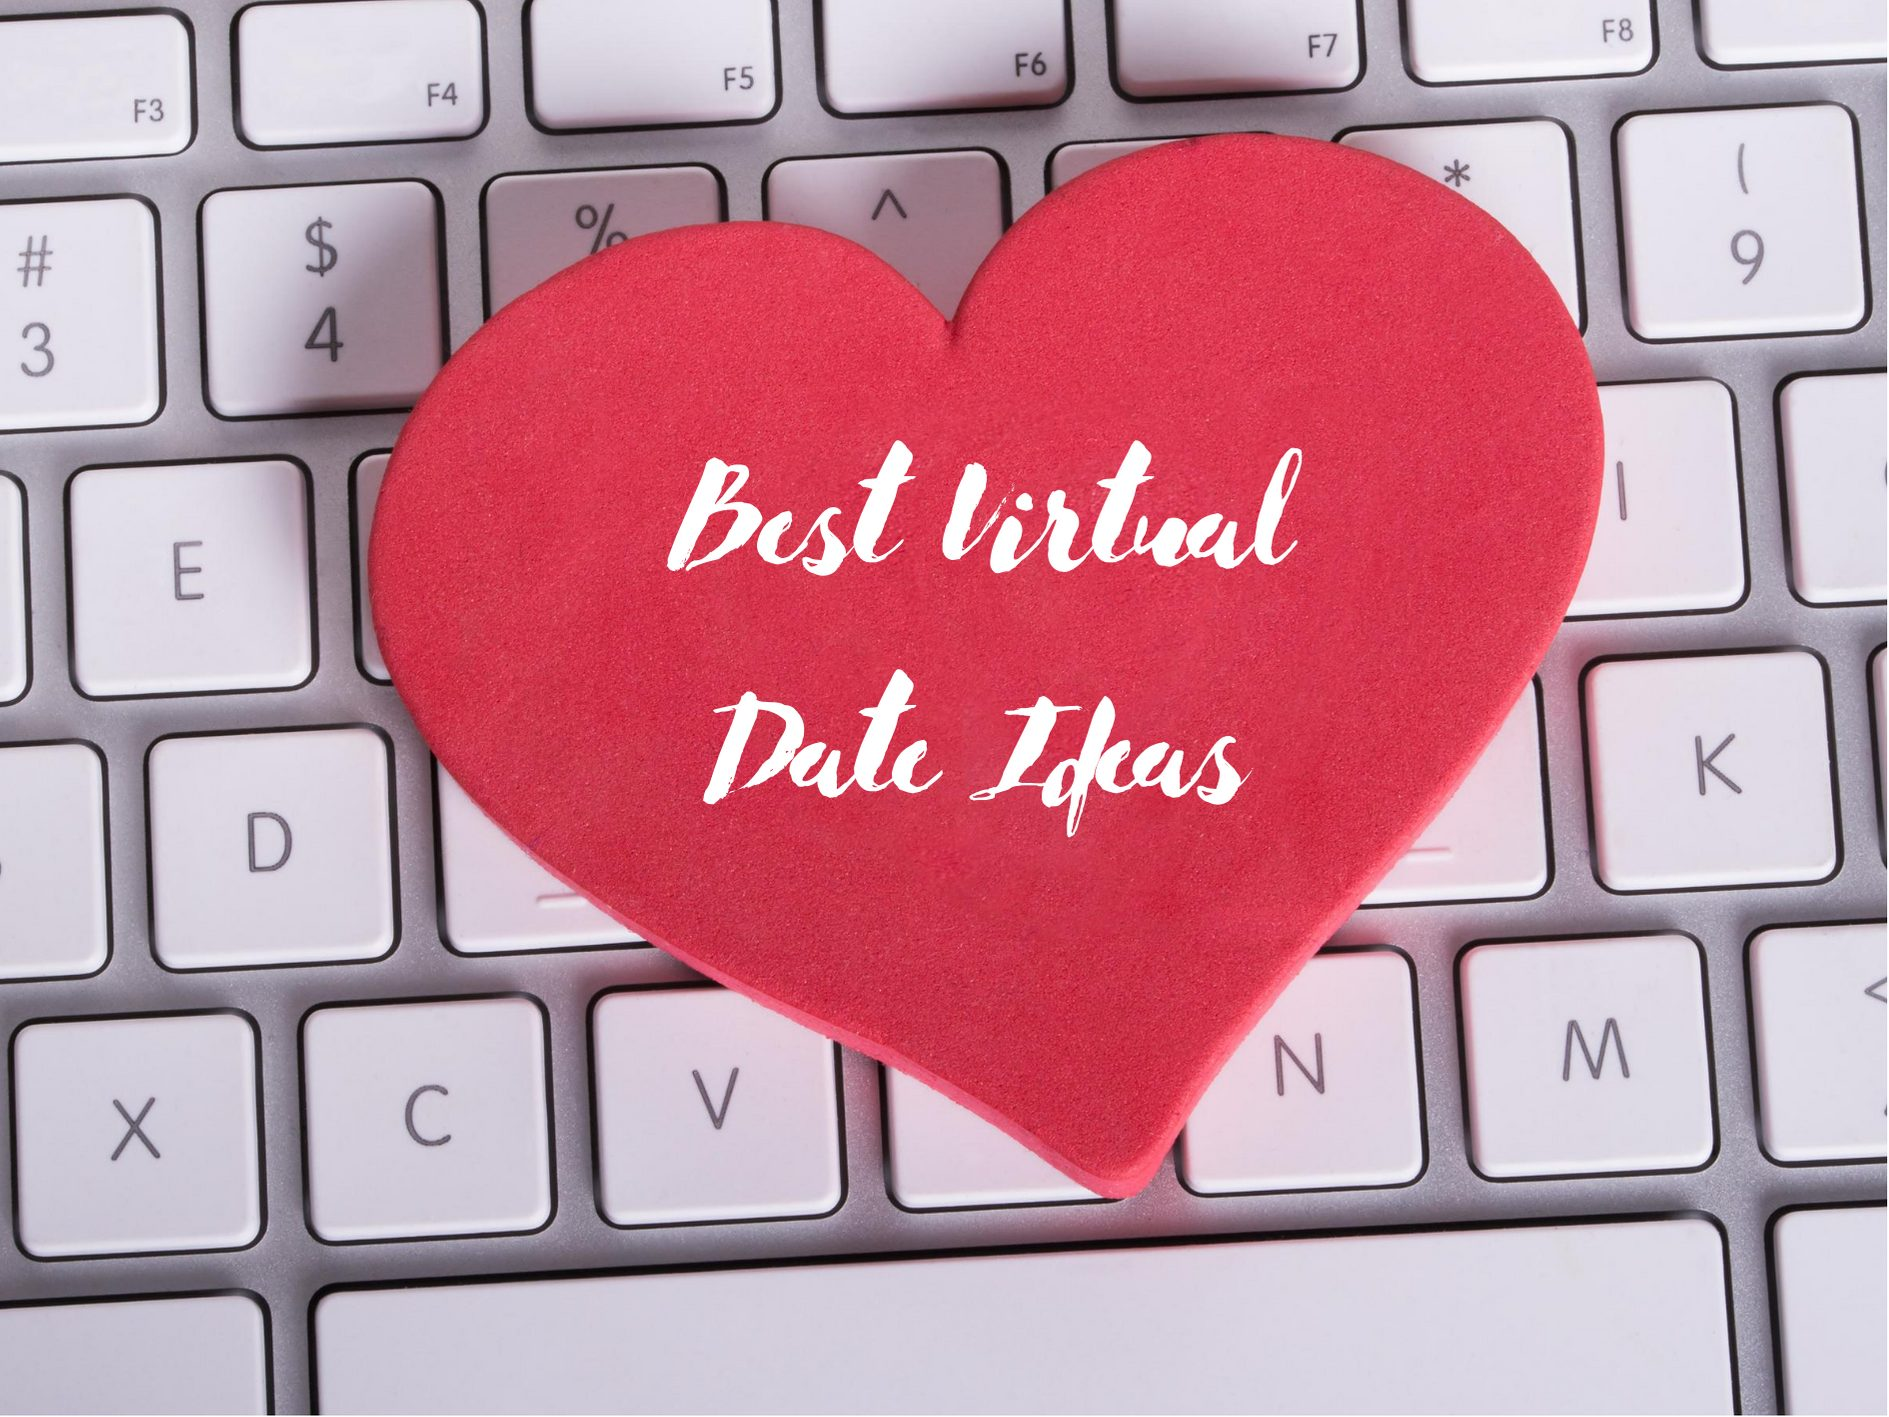 Five of the Best Virtual Date Ideas